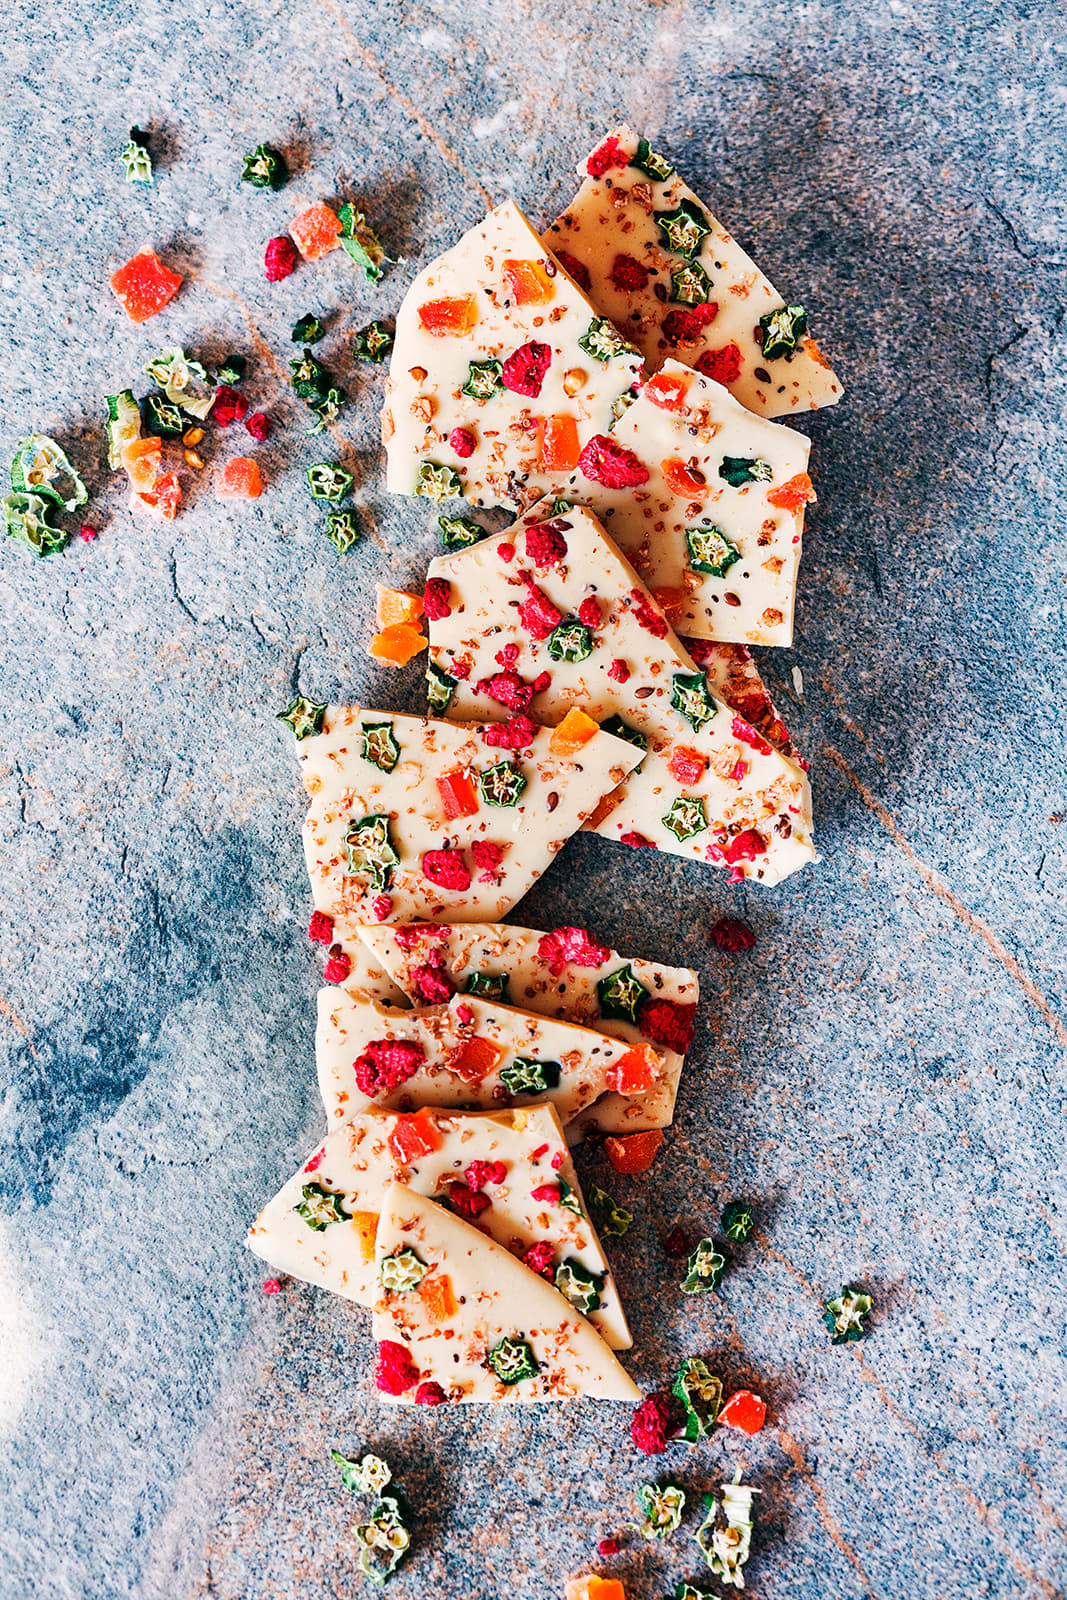 Food Photography for Radiant Health Magazine